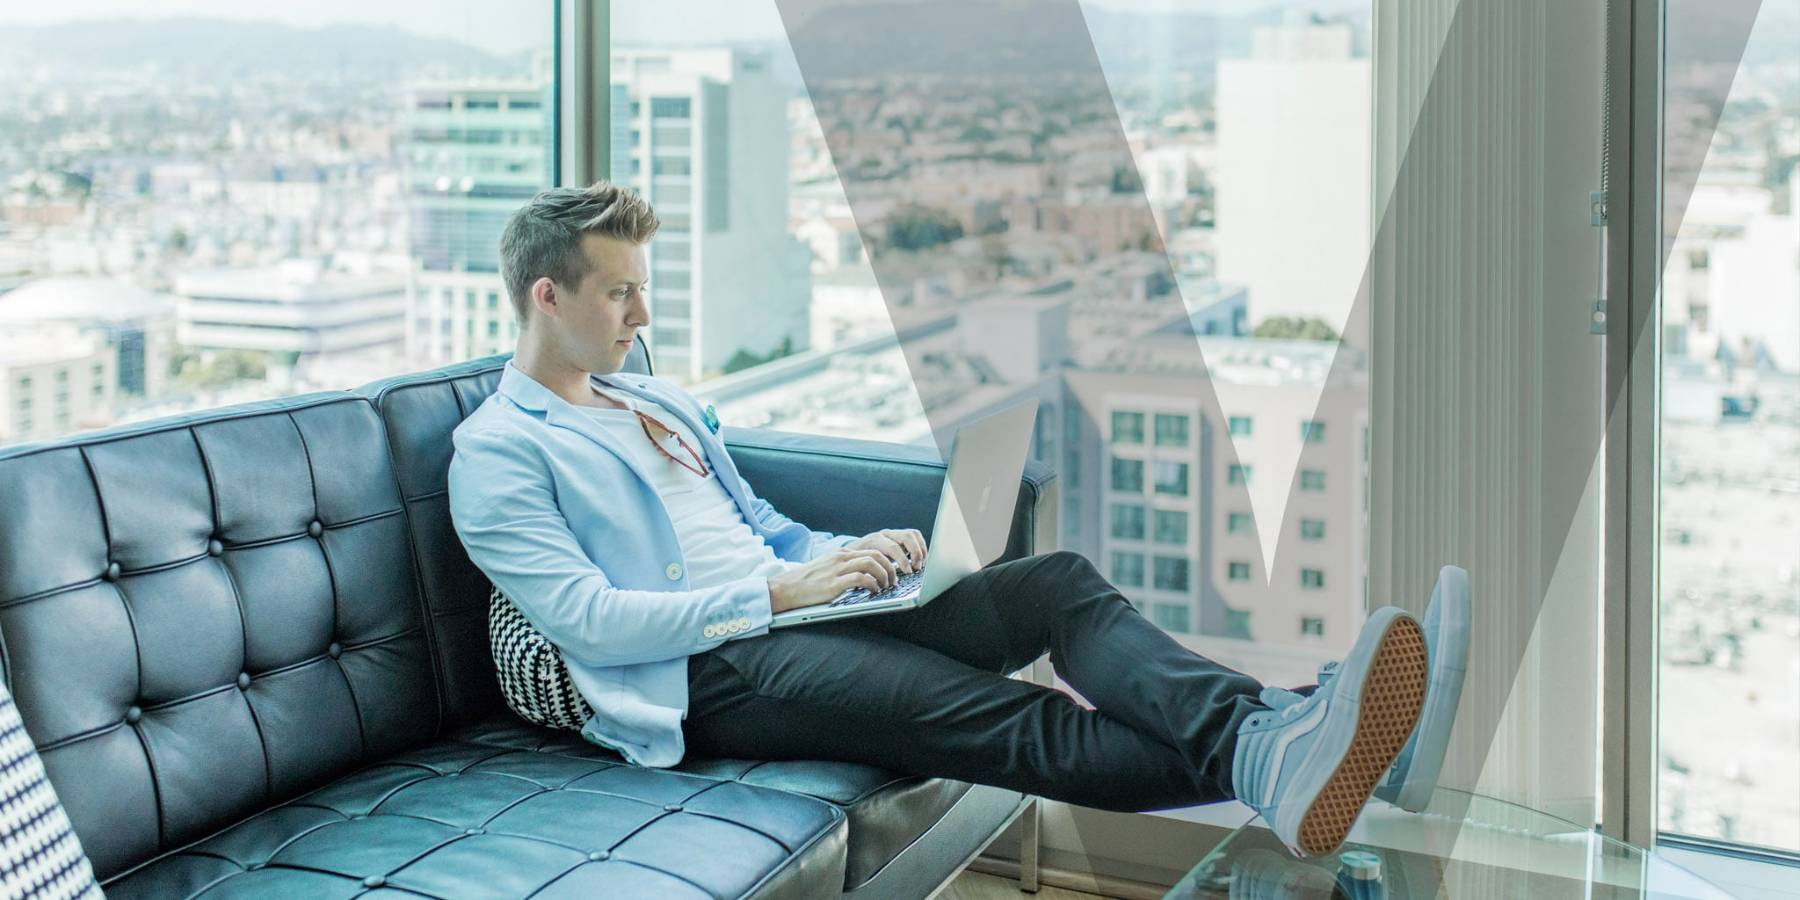 A person sitting on a couch and working from home